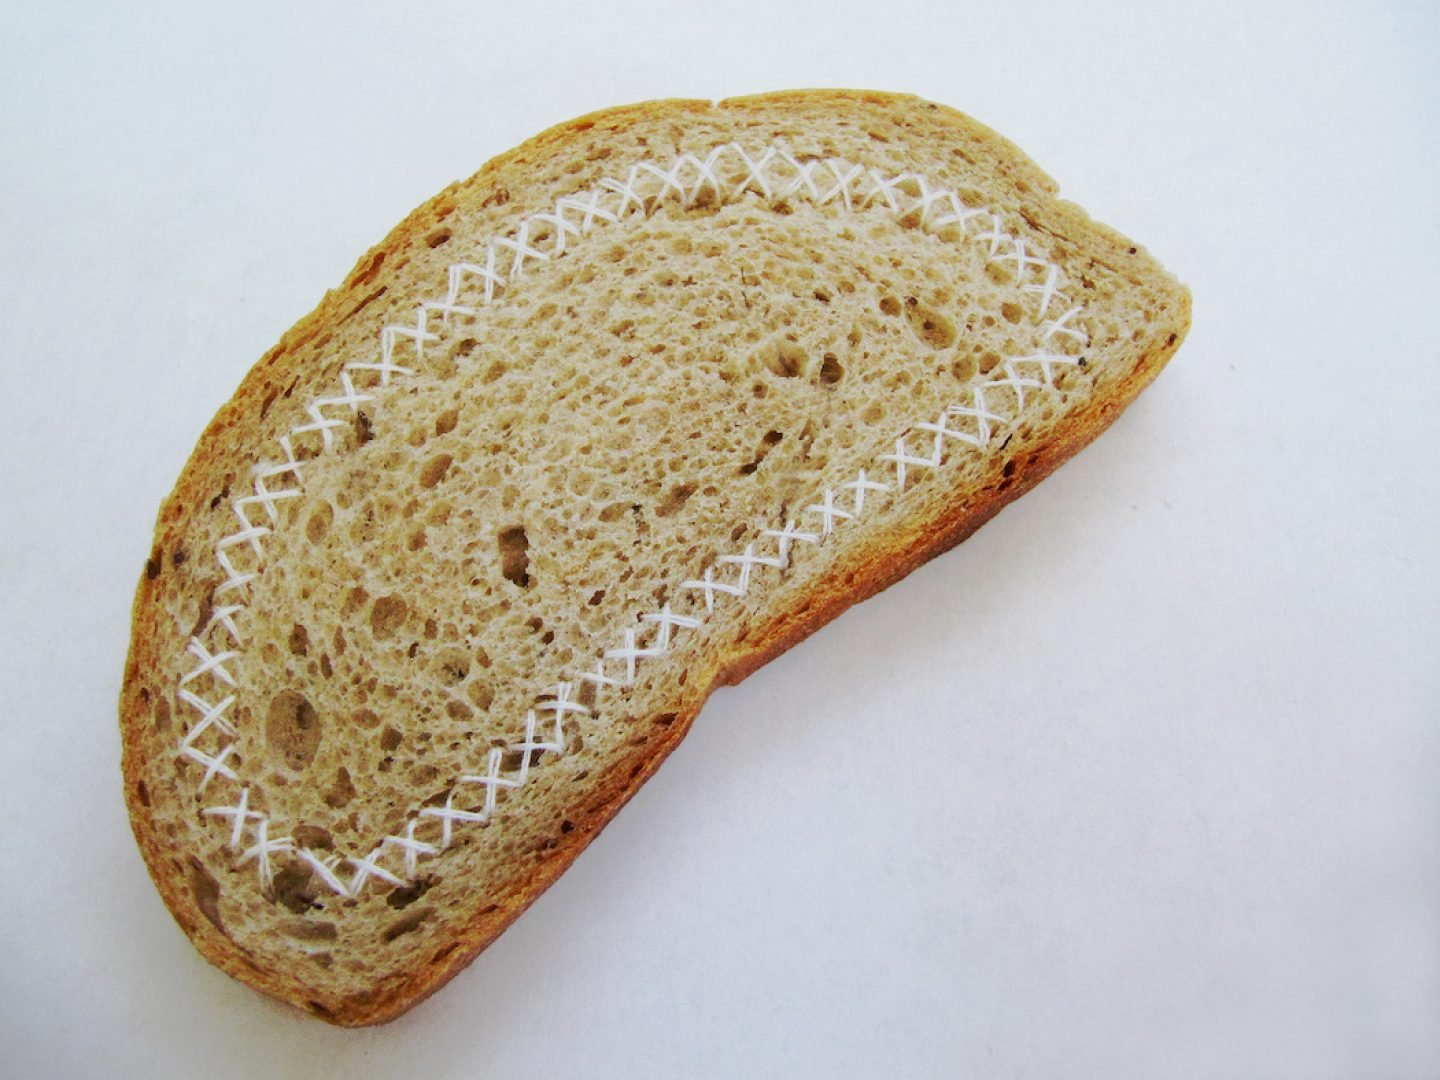 art_tereziakrnacova_everydaybread_06